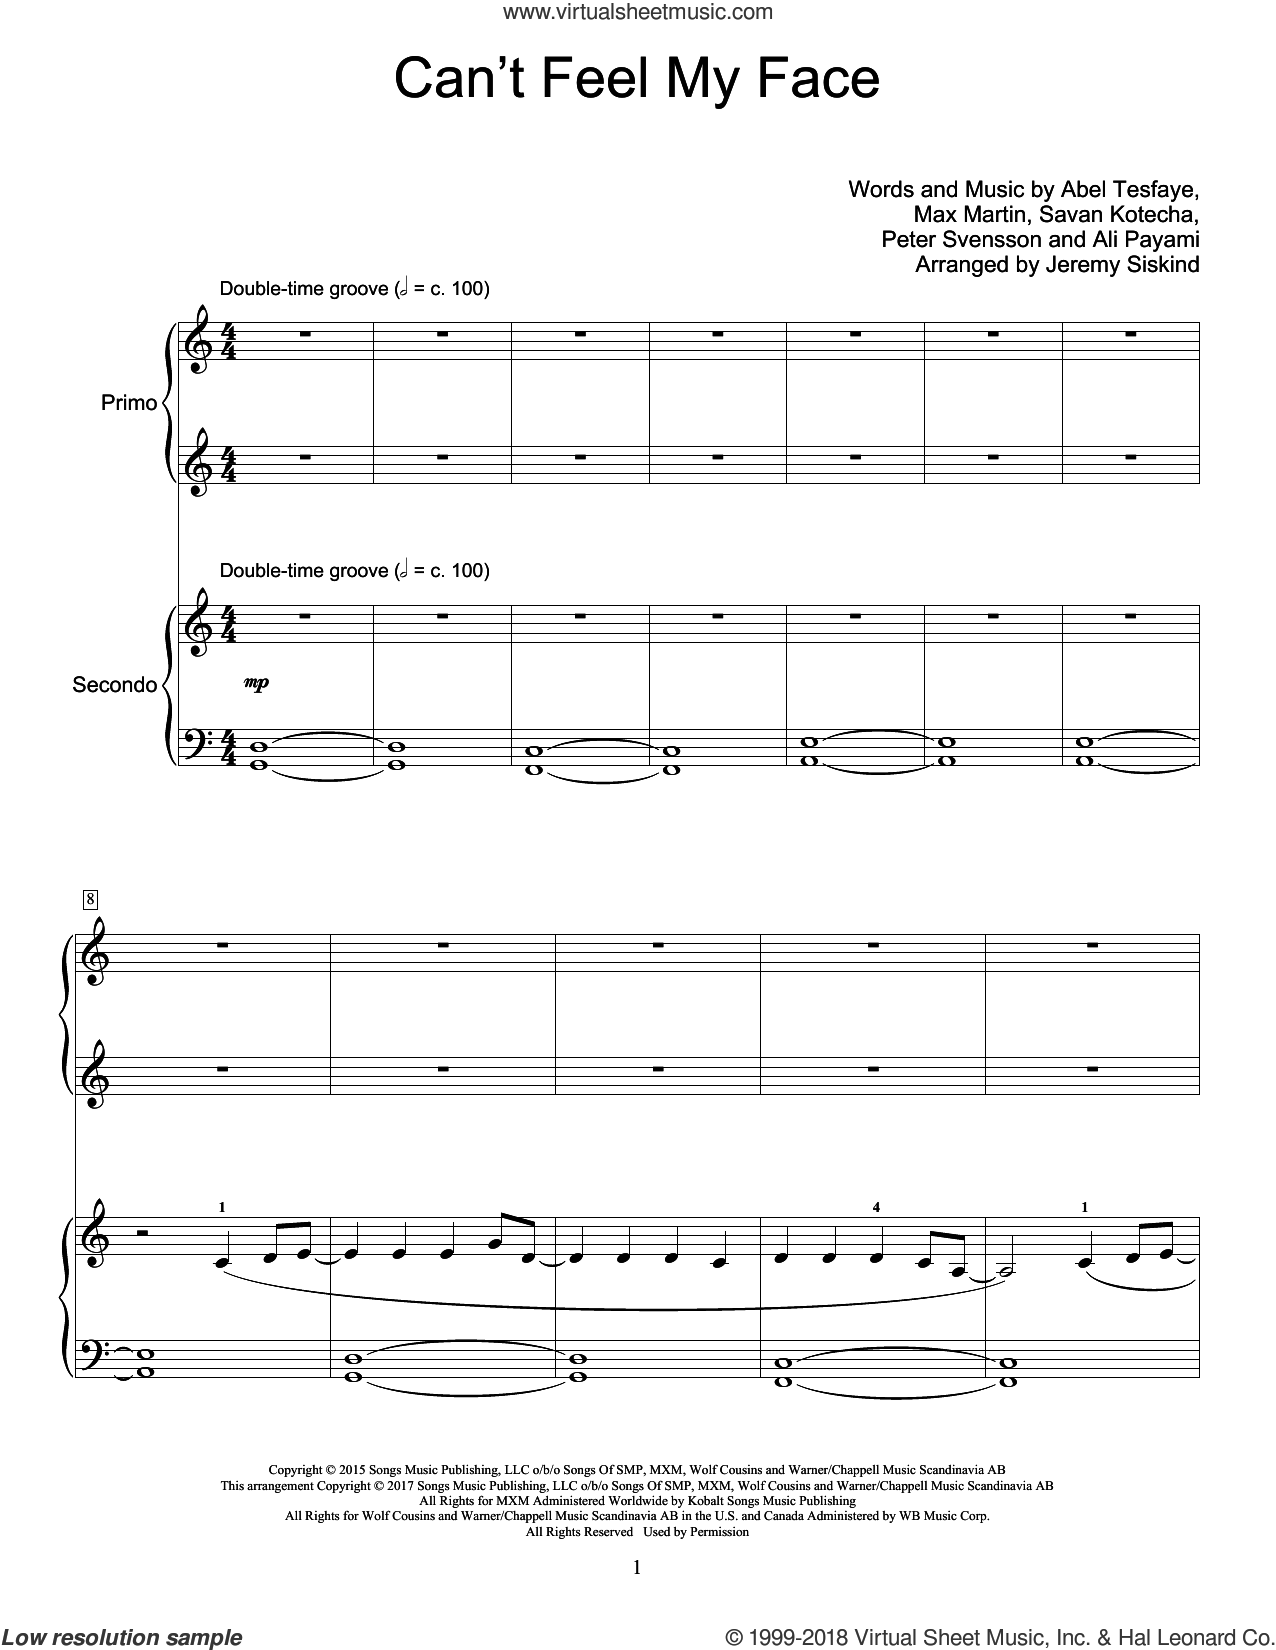 Can't Feel My Face sheet music for piano four hands by The Weeknd, Jeremy Siskind, Abel Tesfaye, Ali Payami, Max Martin, Peter Svensson and Savan Kotecha, intermediate